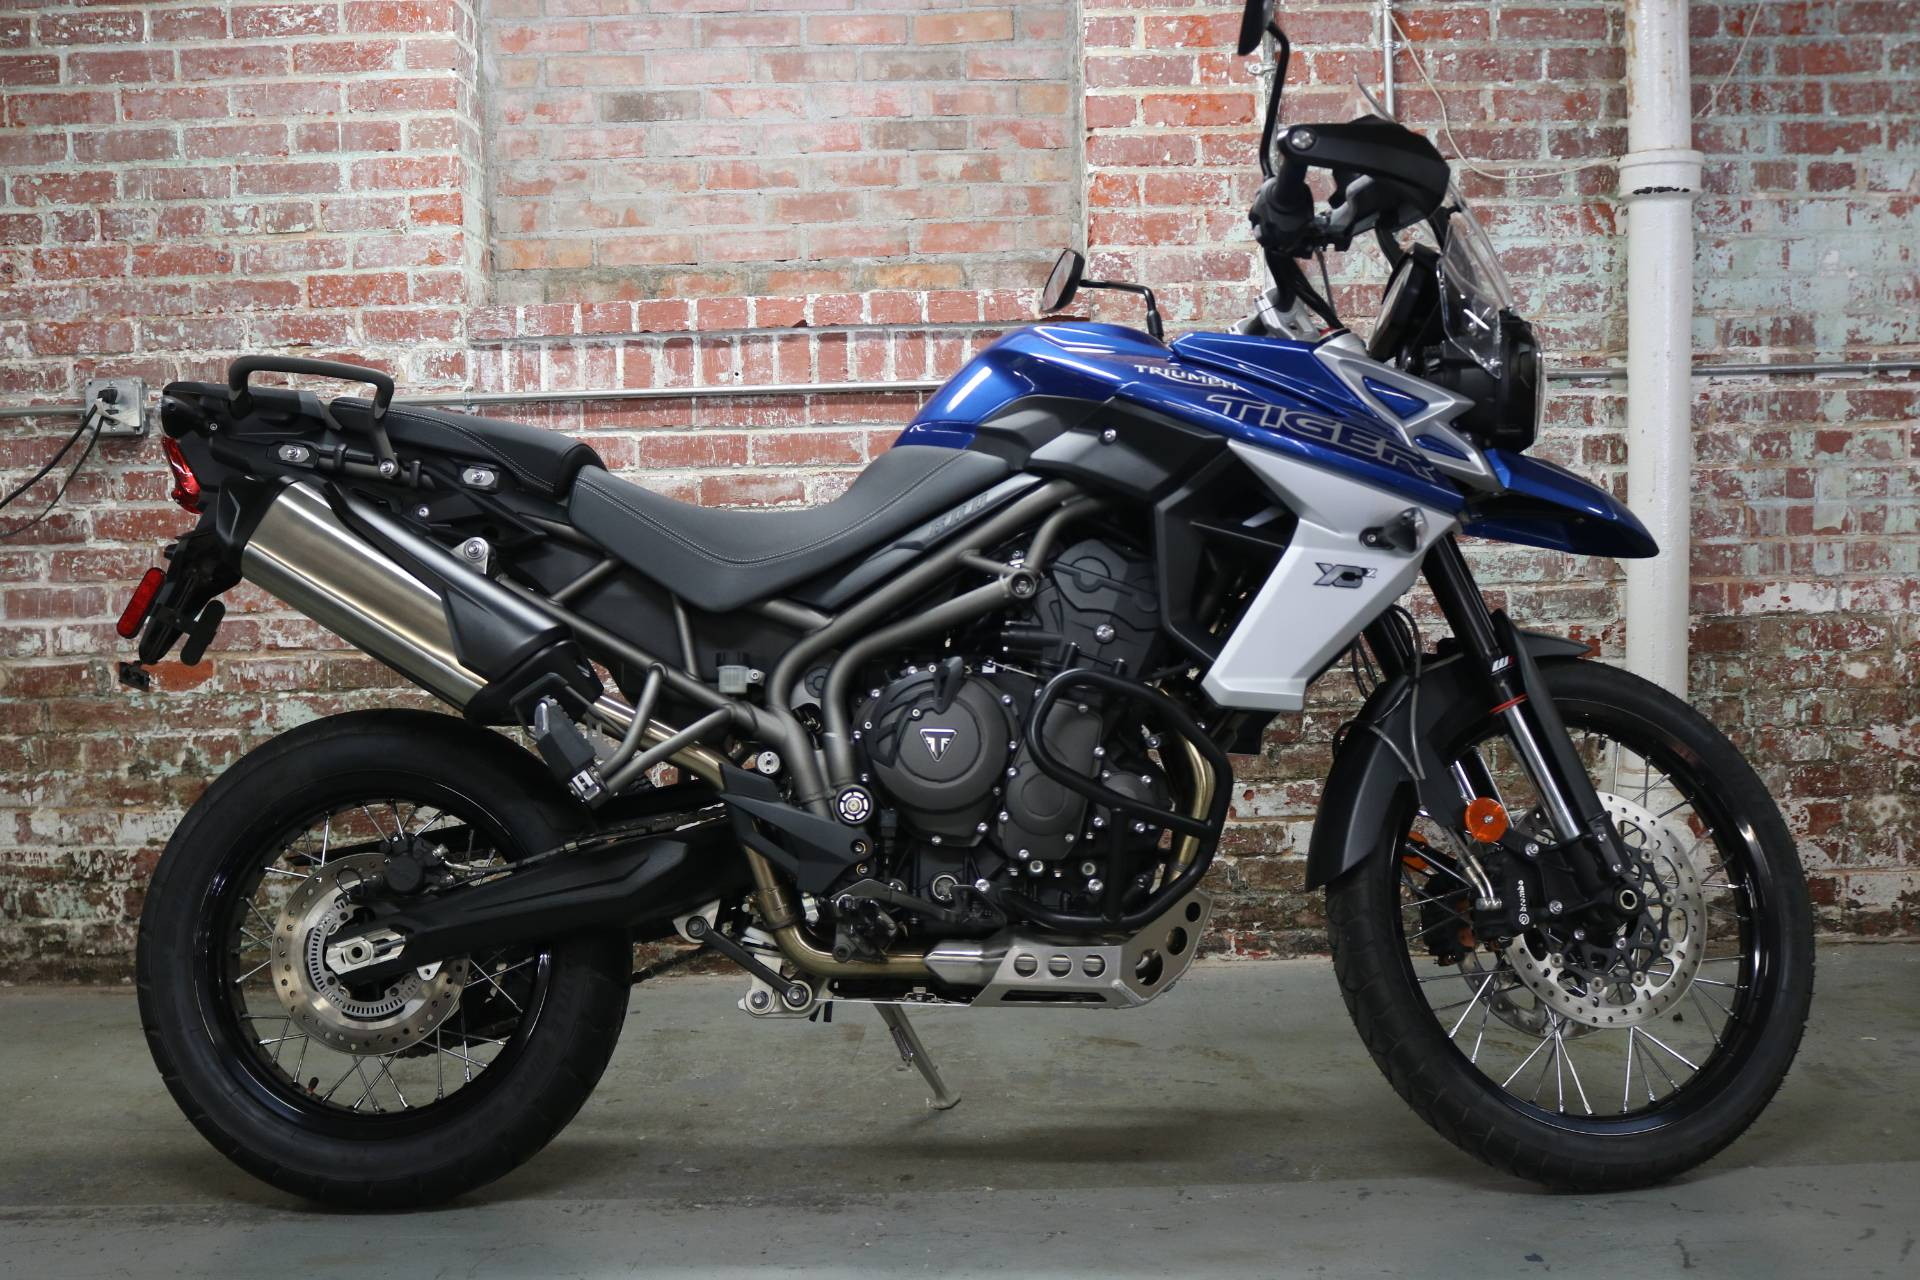 New 2018 Triumph Tiger 800 Xcx Motorcycles In Greensboro Nc Stock